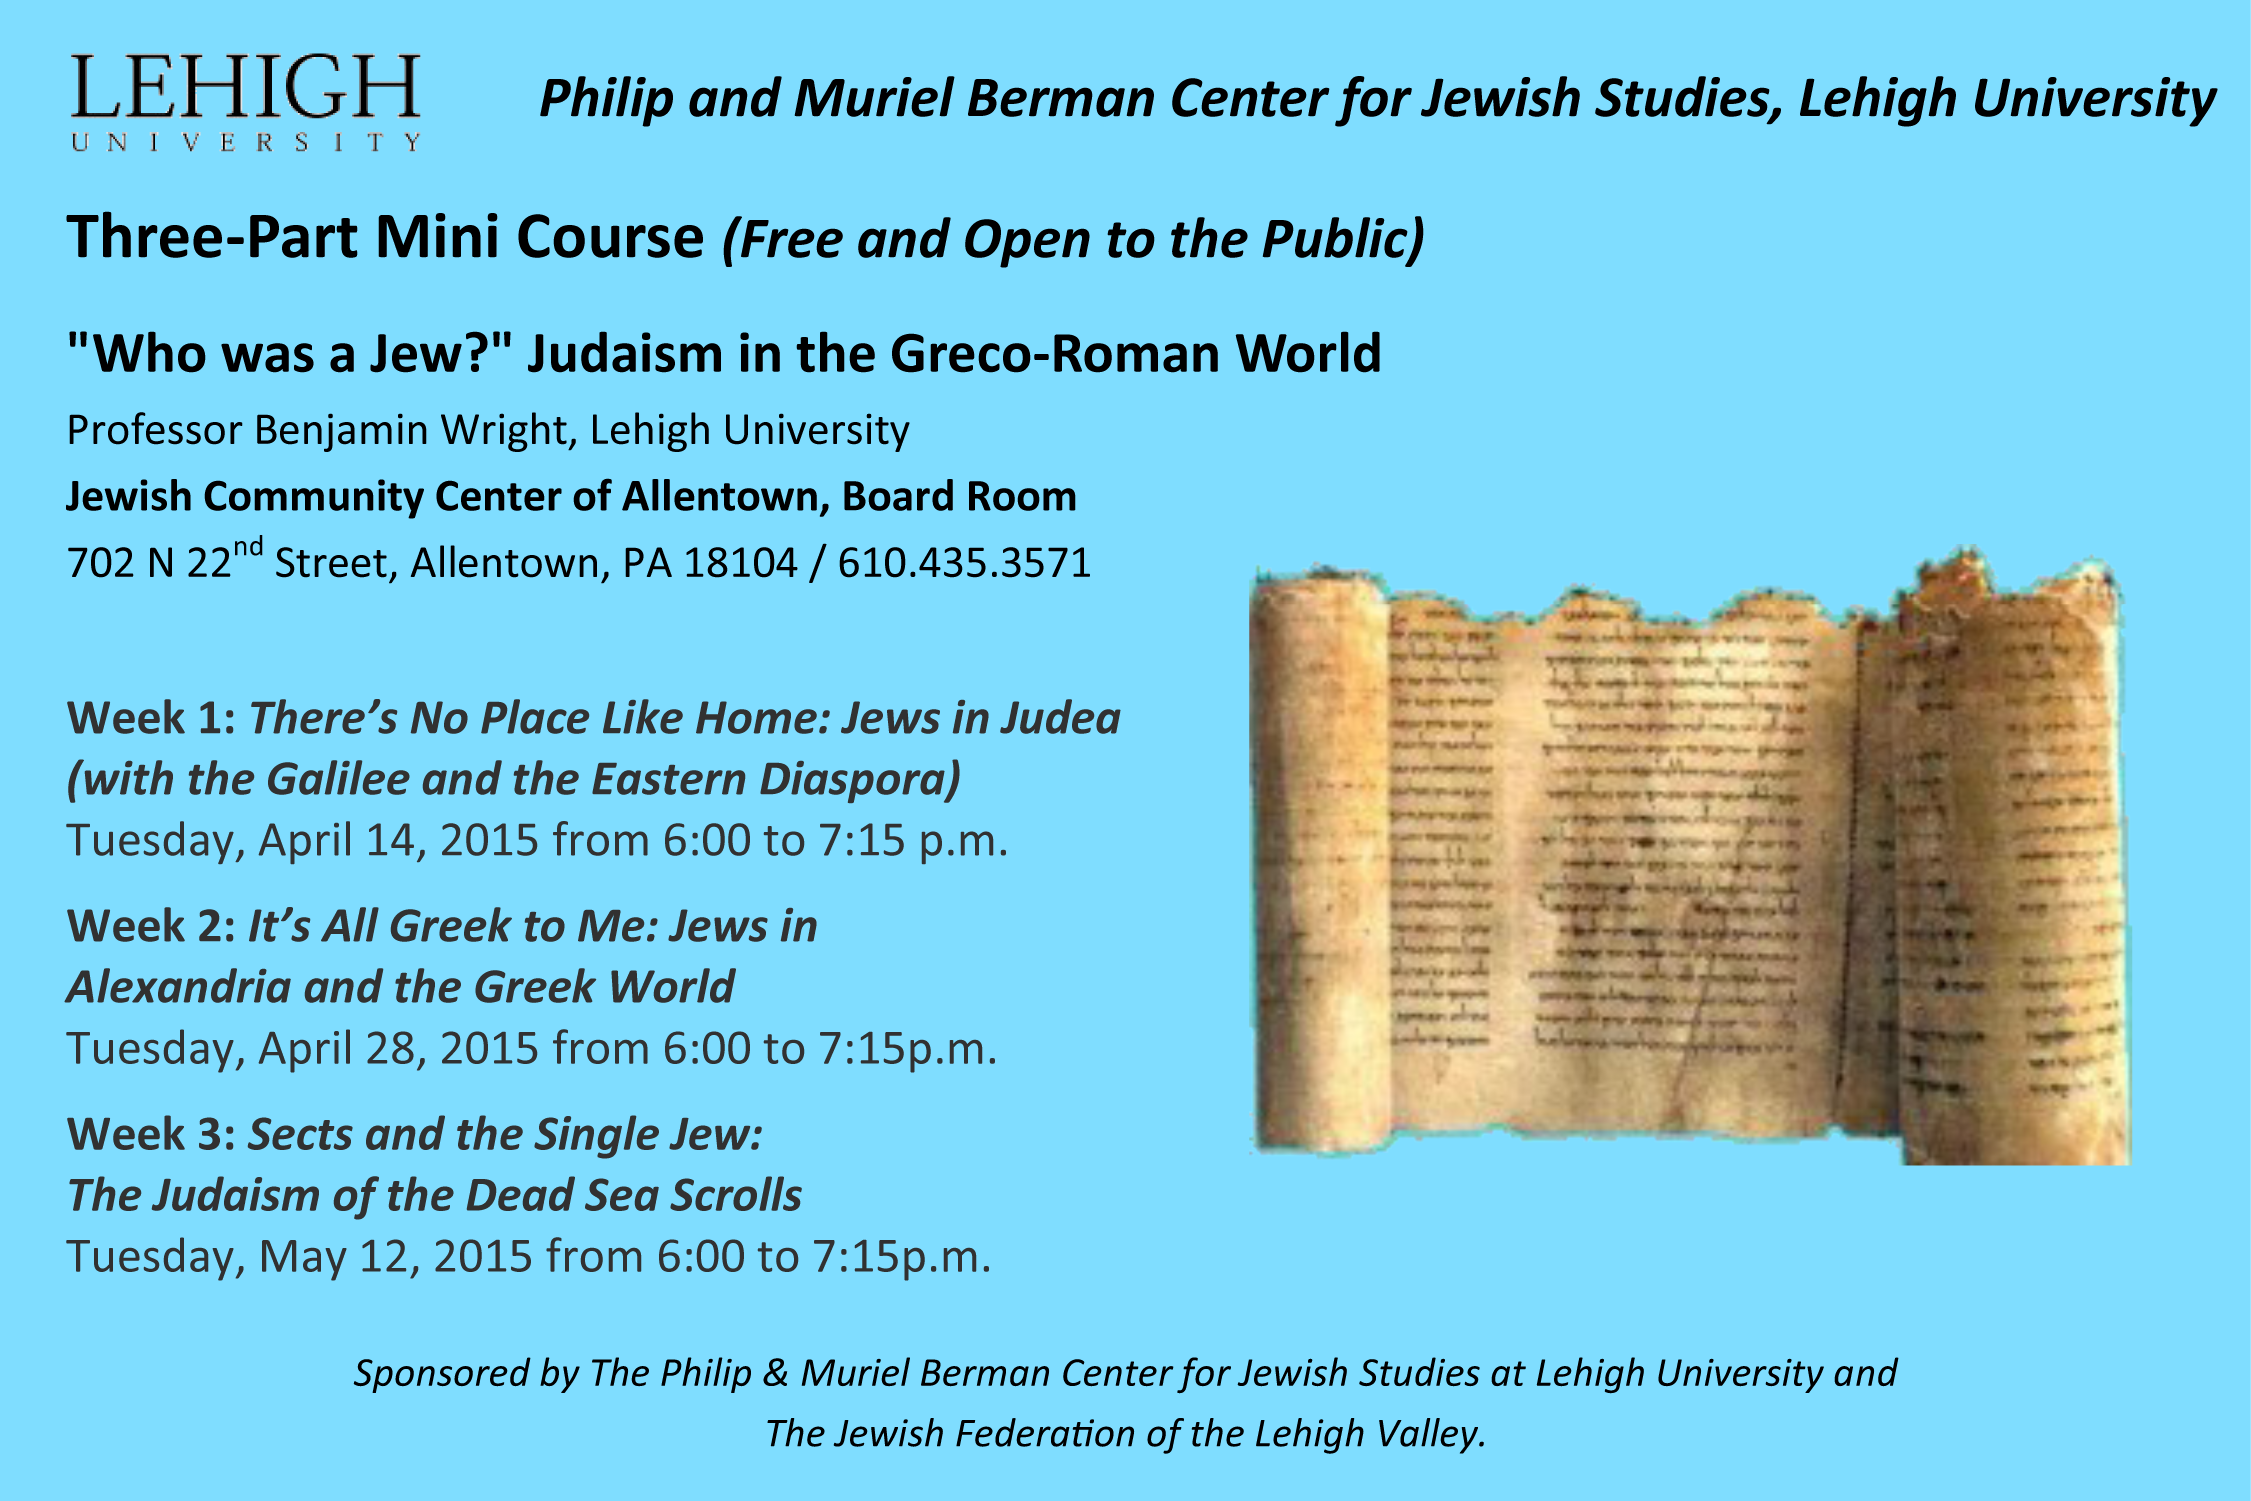 Philip and Muriel Berman Center for Jewish studies